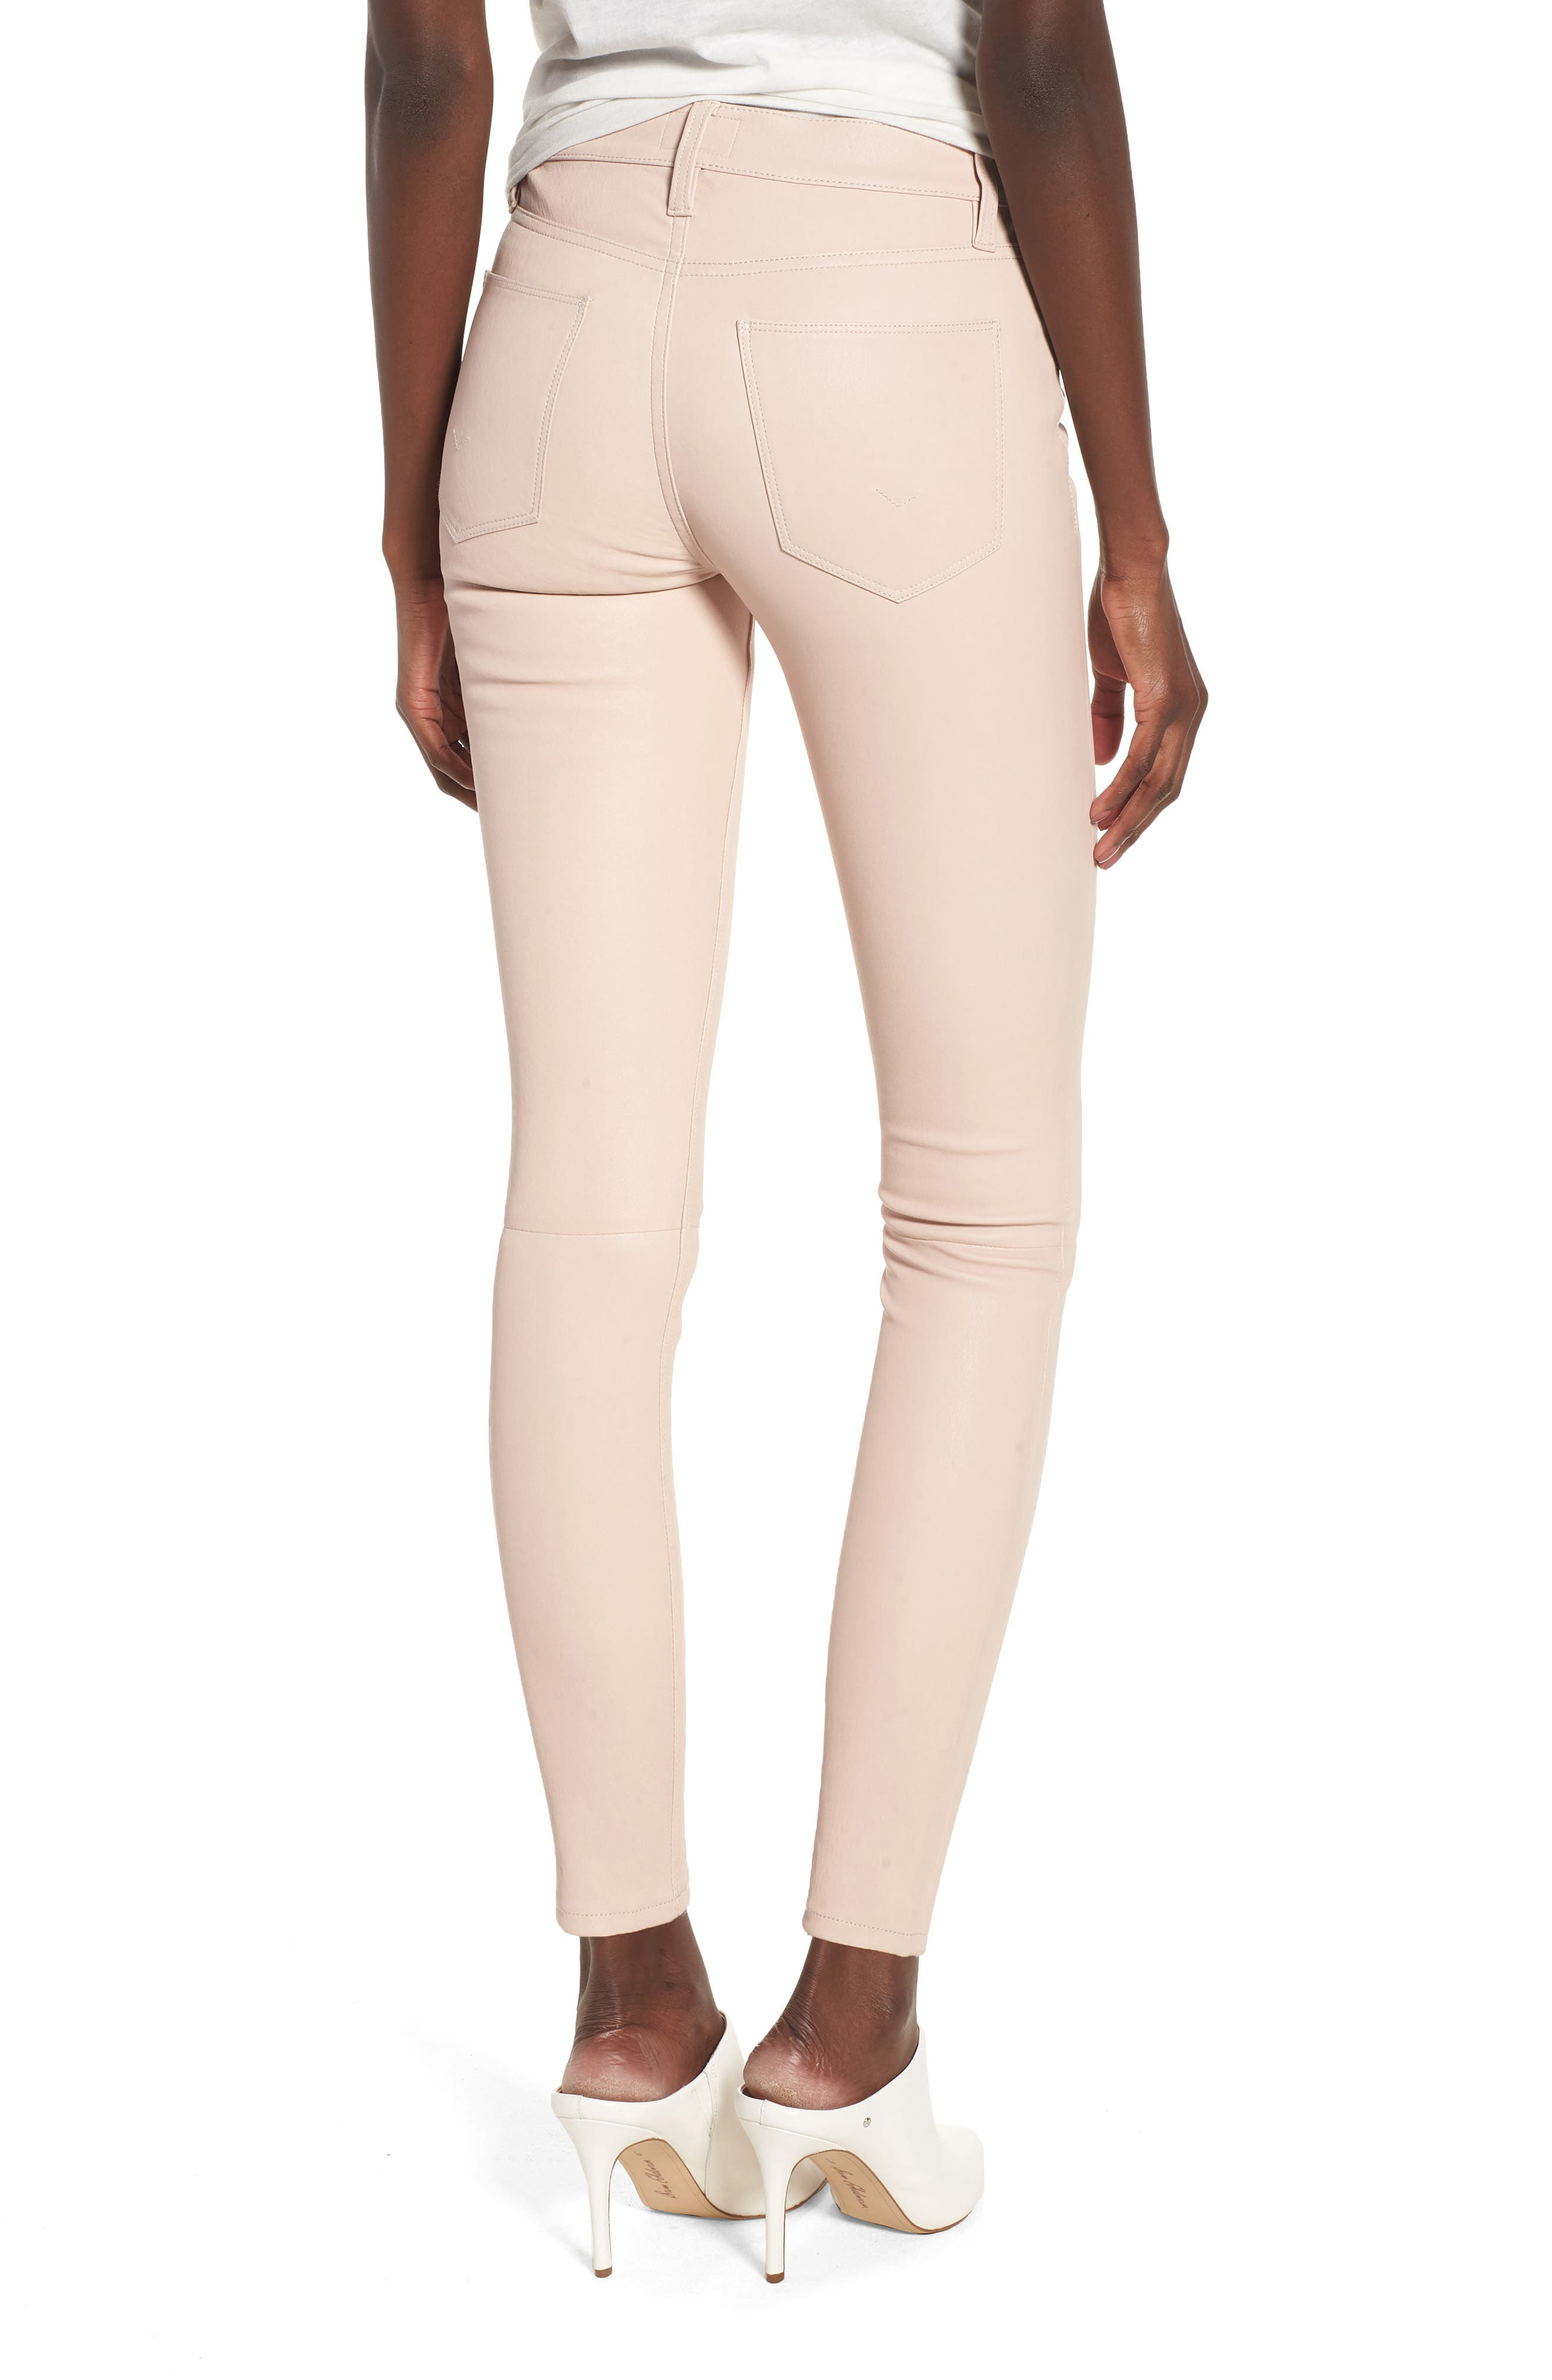 Barbara High Waist Ankle Skinny Leather Jeans,                             Alternate thumbnail 2, color,                             BLUSHING